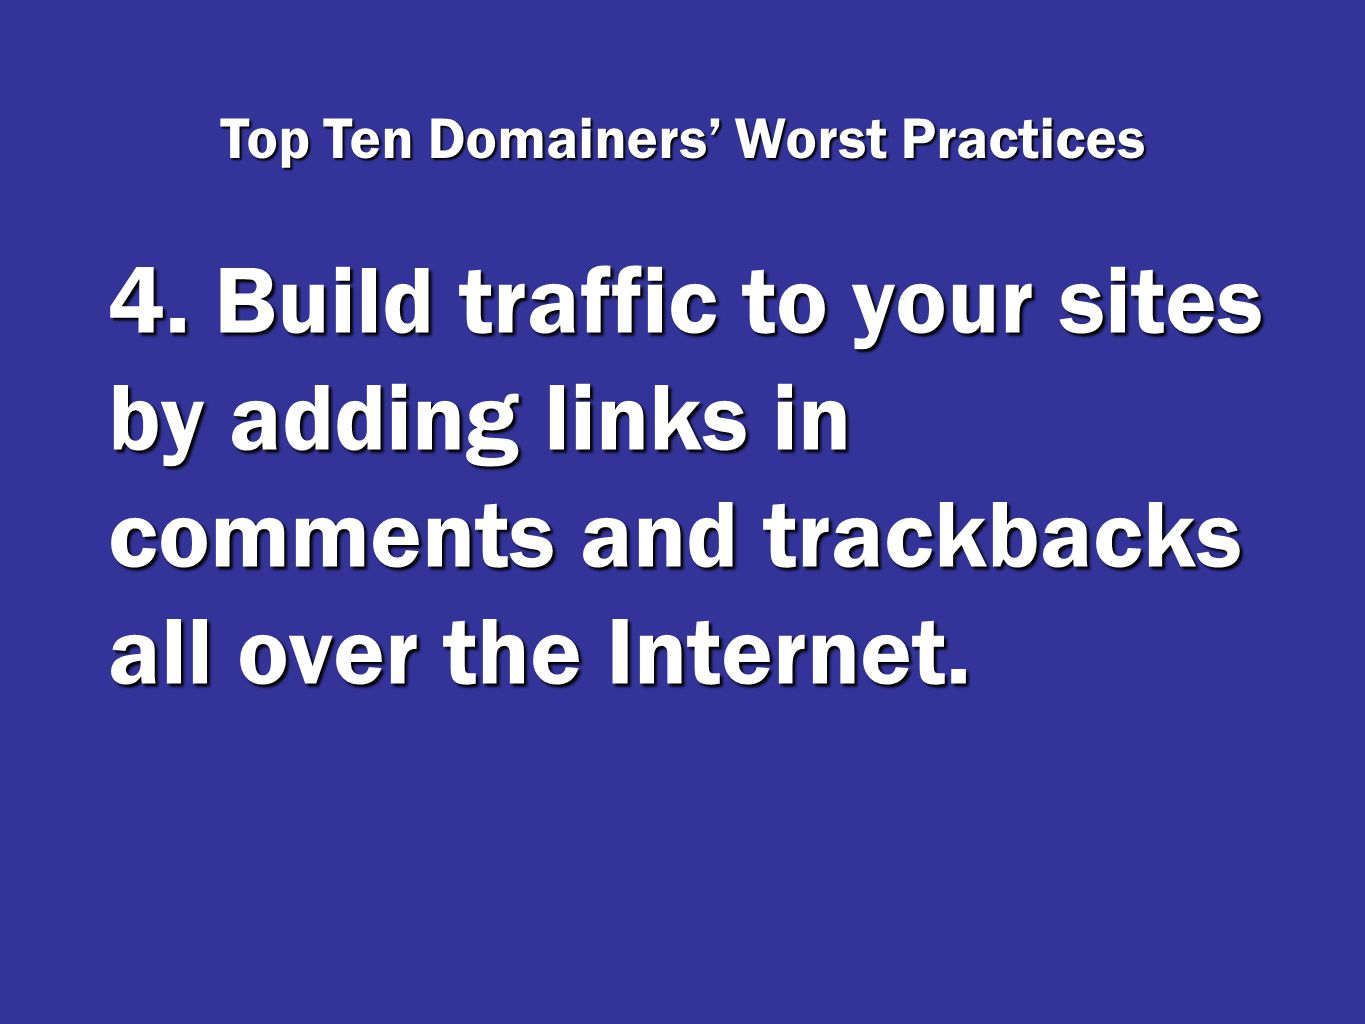 4. Build traffic to your sites by adding links in comments and trackbacks all over the Internet.